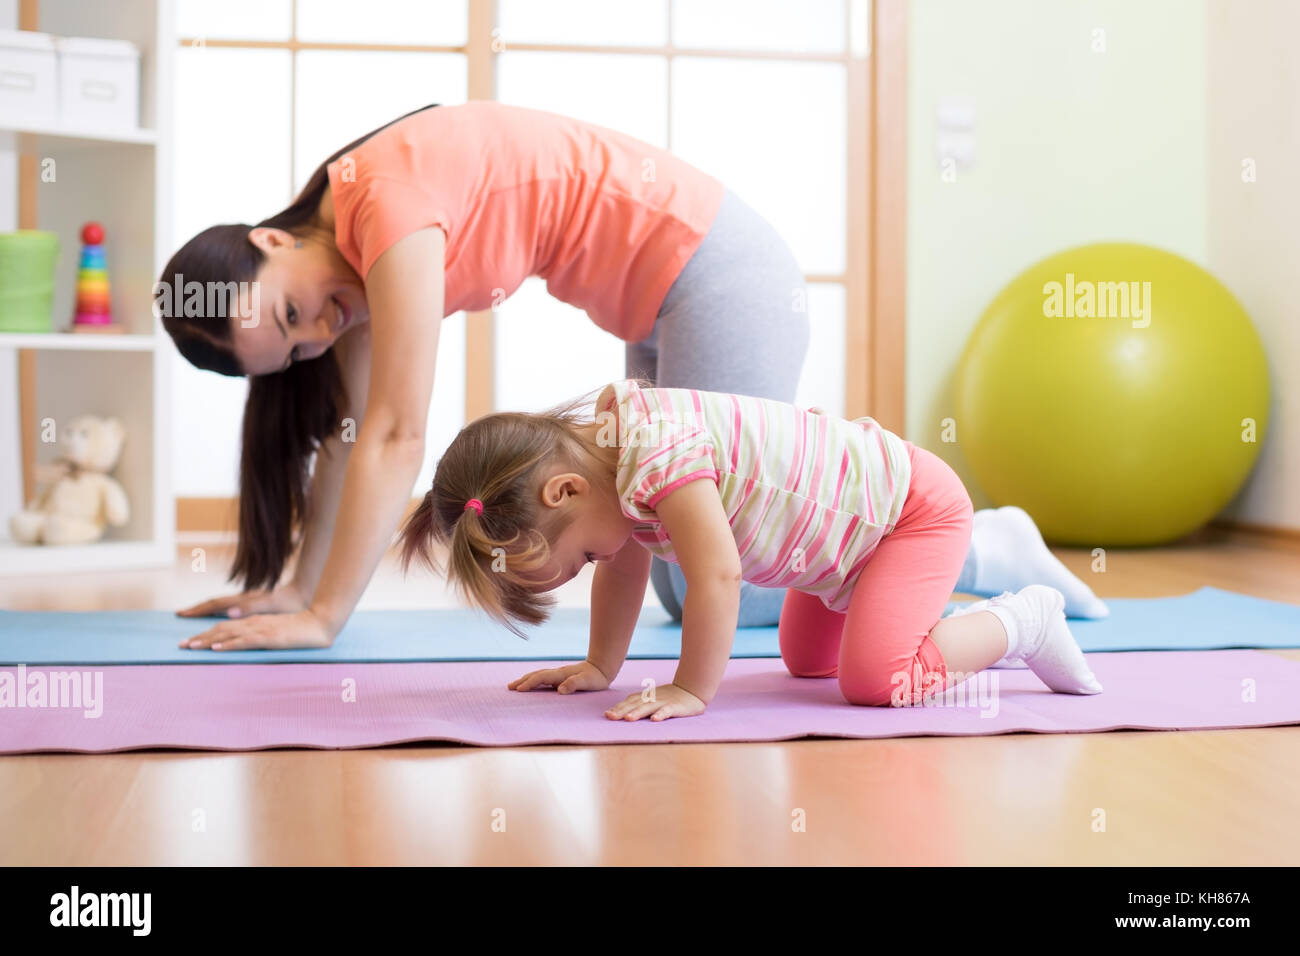 Mother and child daughter practicing yoga together at home. Sport and family concept - Stock Image